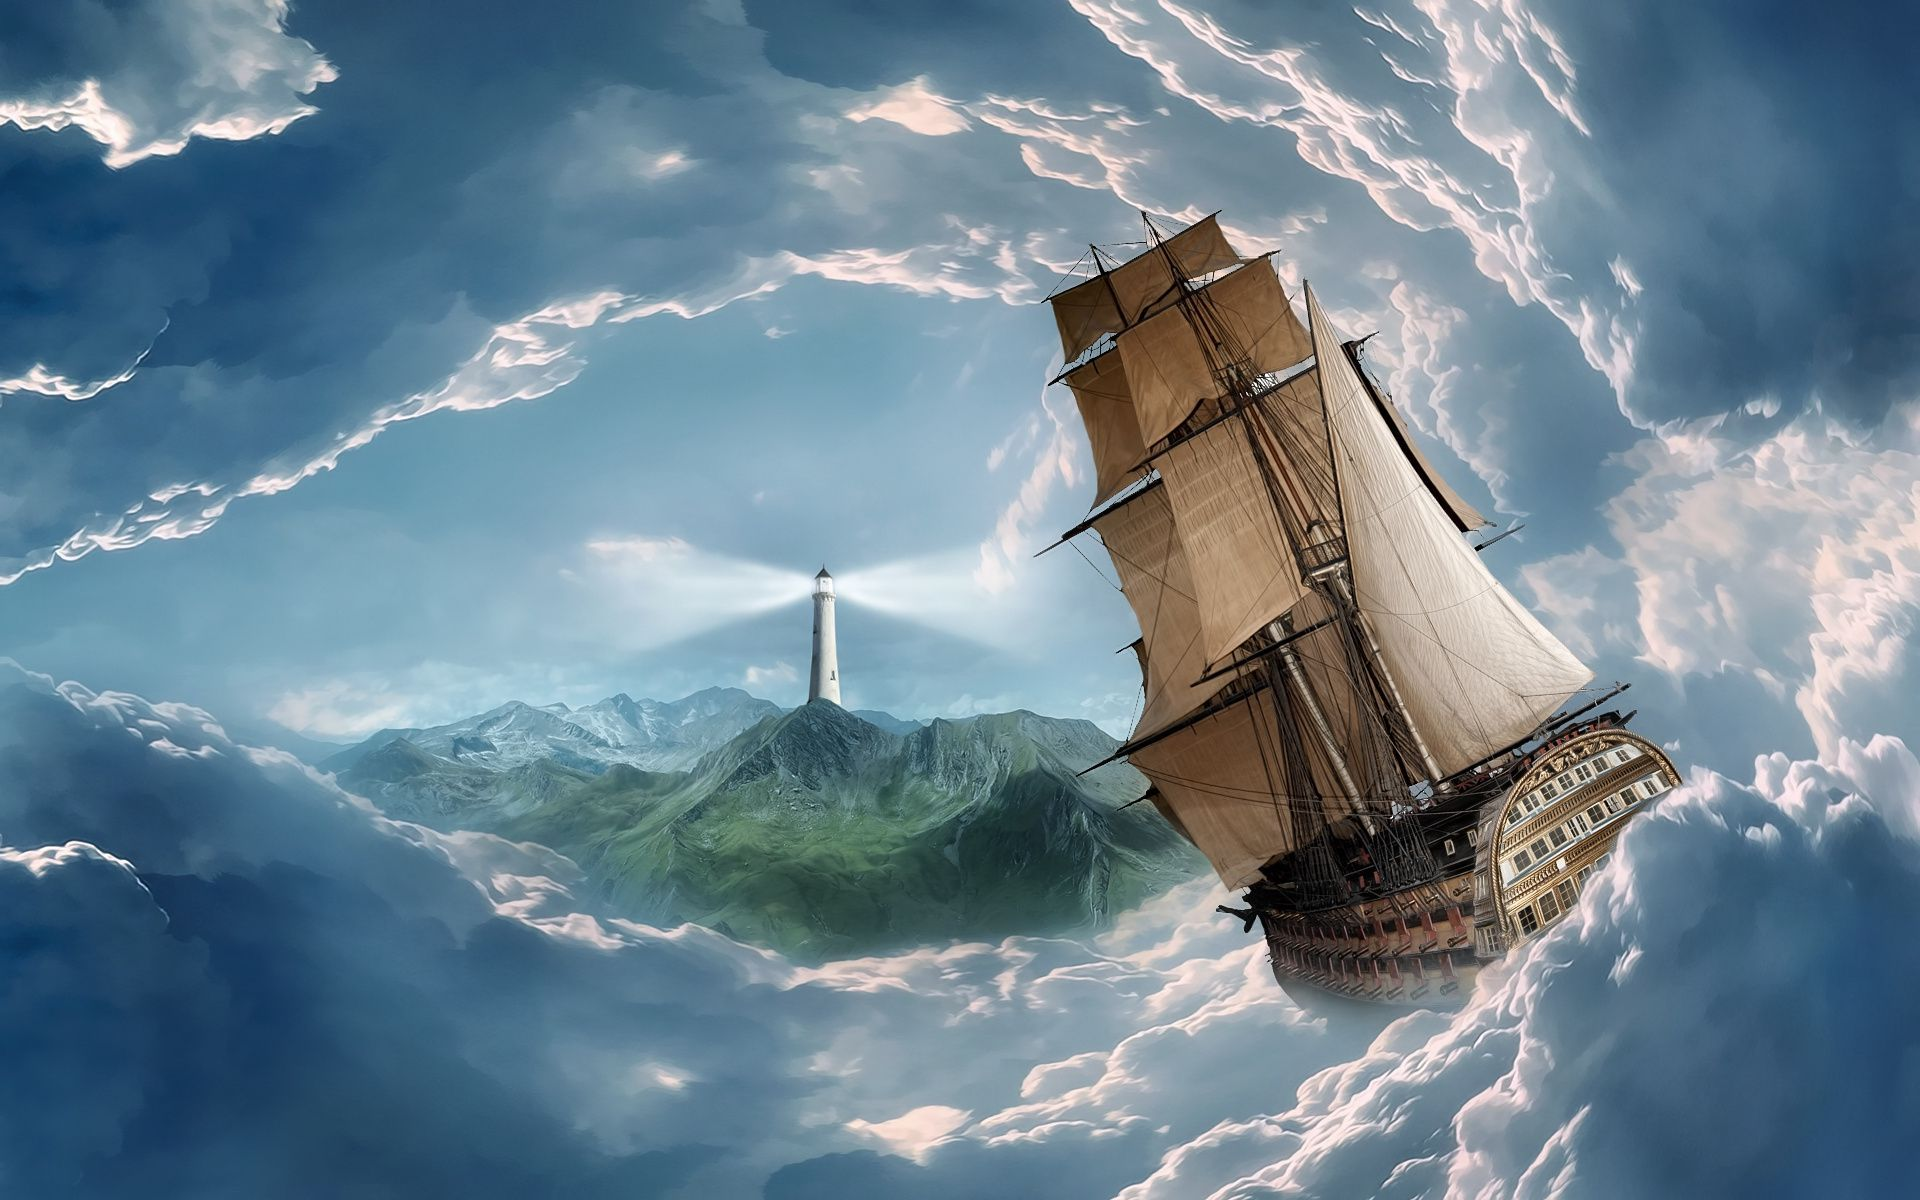 Ship sailing in the clouds